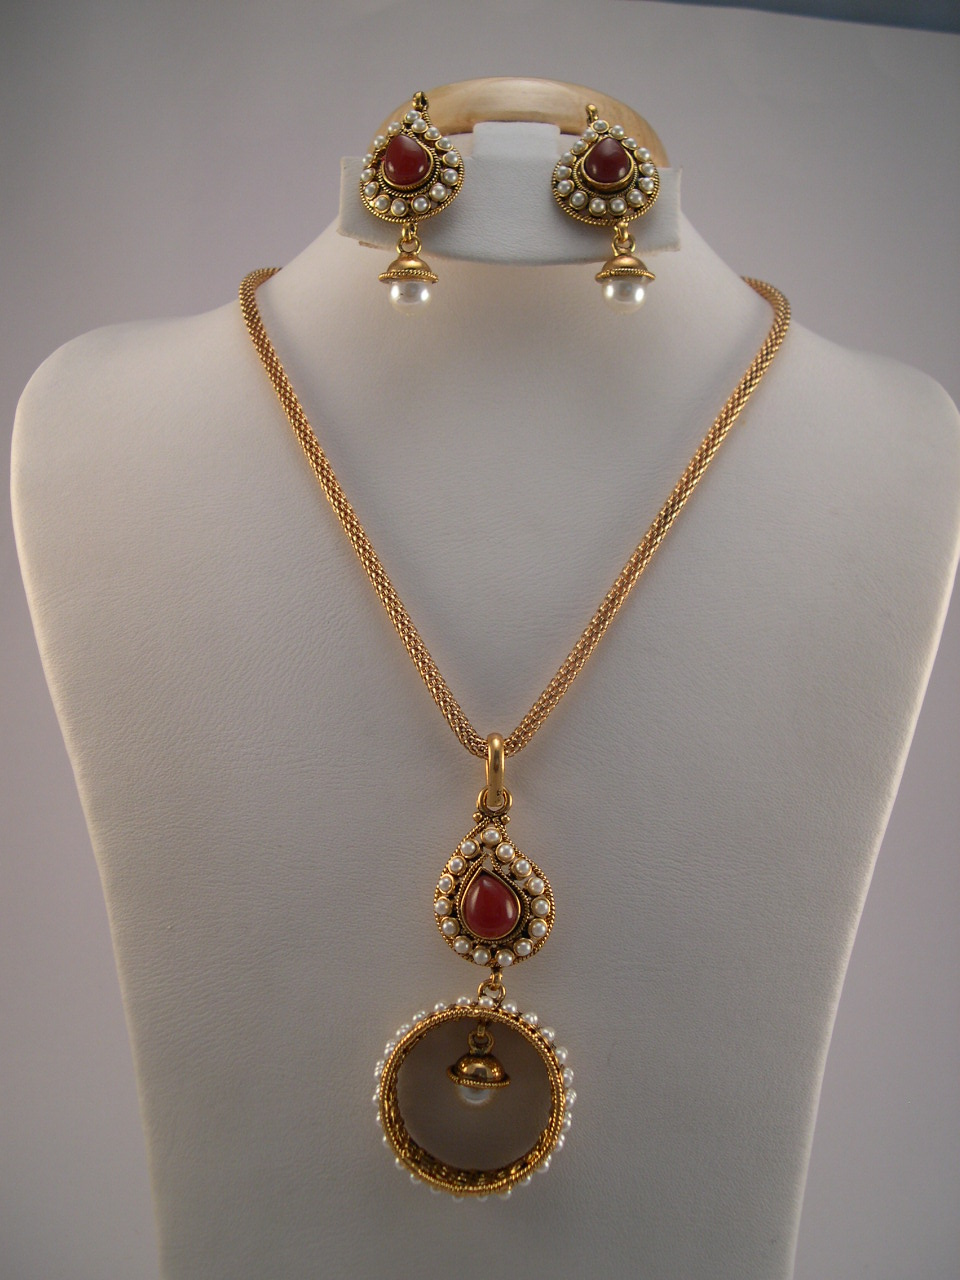 Antique jewelry necklace sets aloadofball Gallery